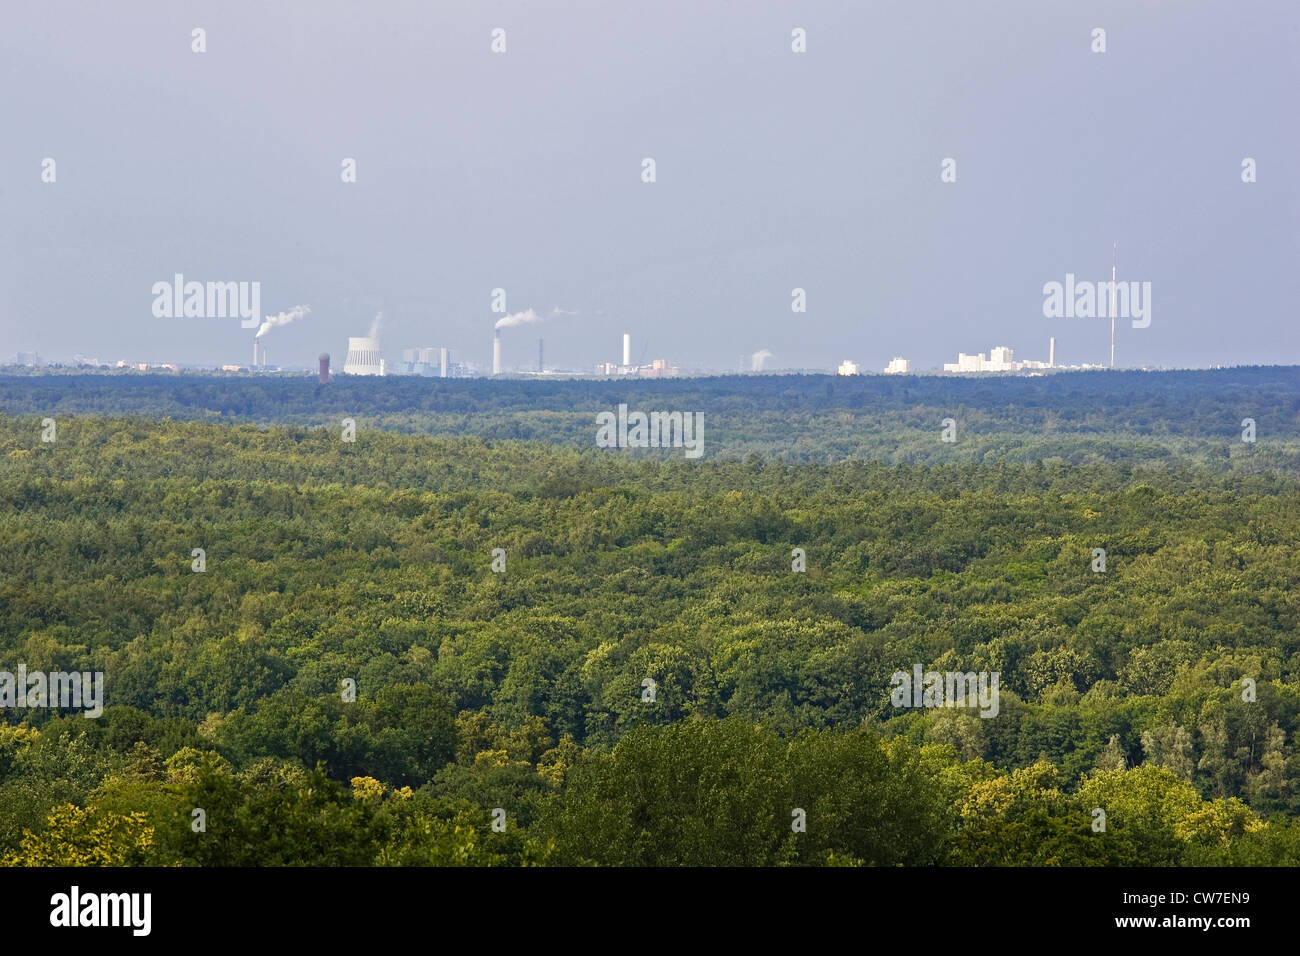 europe, germany, brandenburg, potsdam, belvedere auf dem pfingstberg, panorama of the forest with berlin and factories - Stock Image